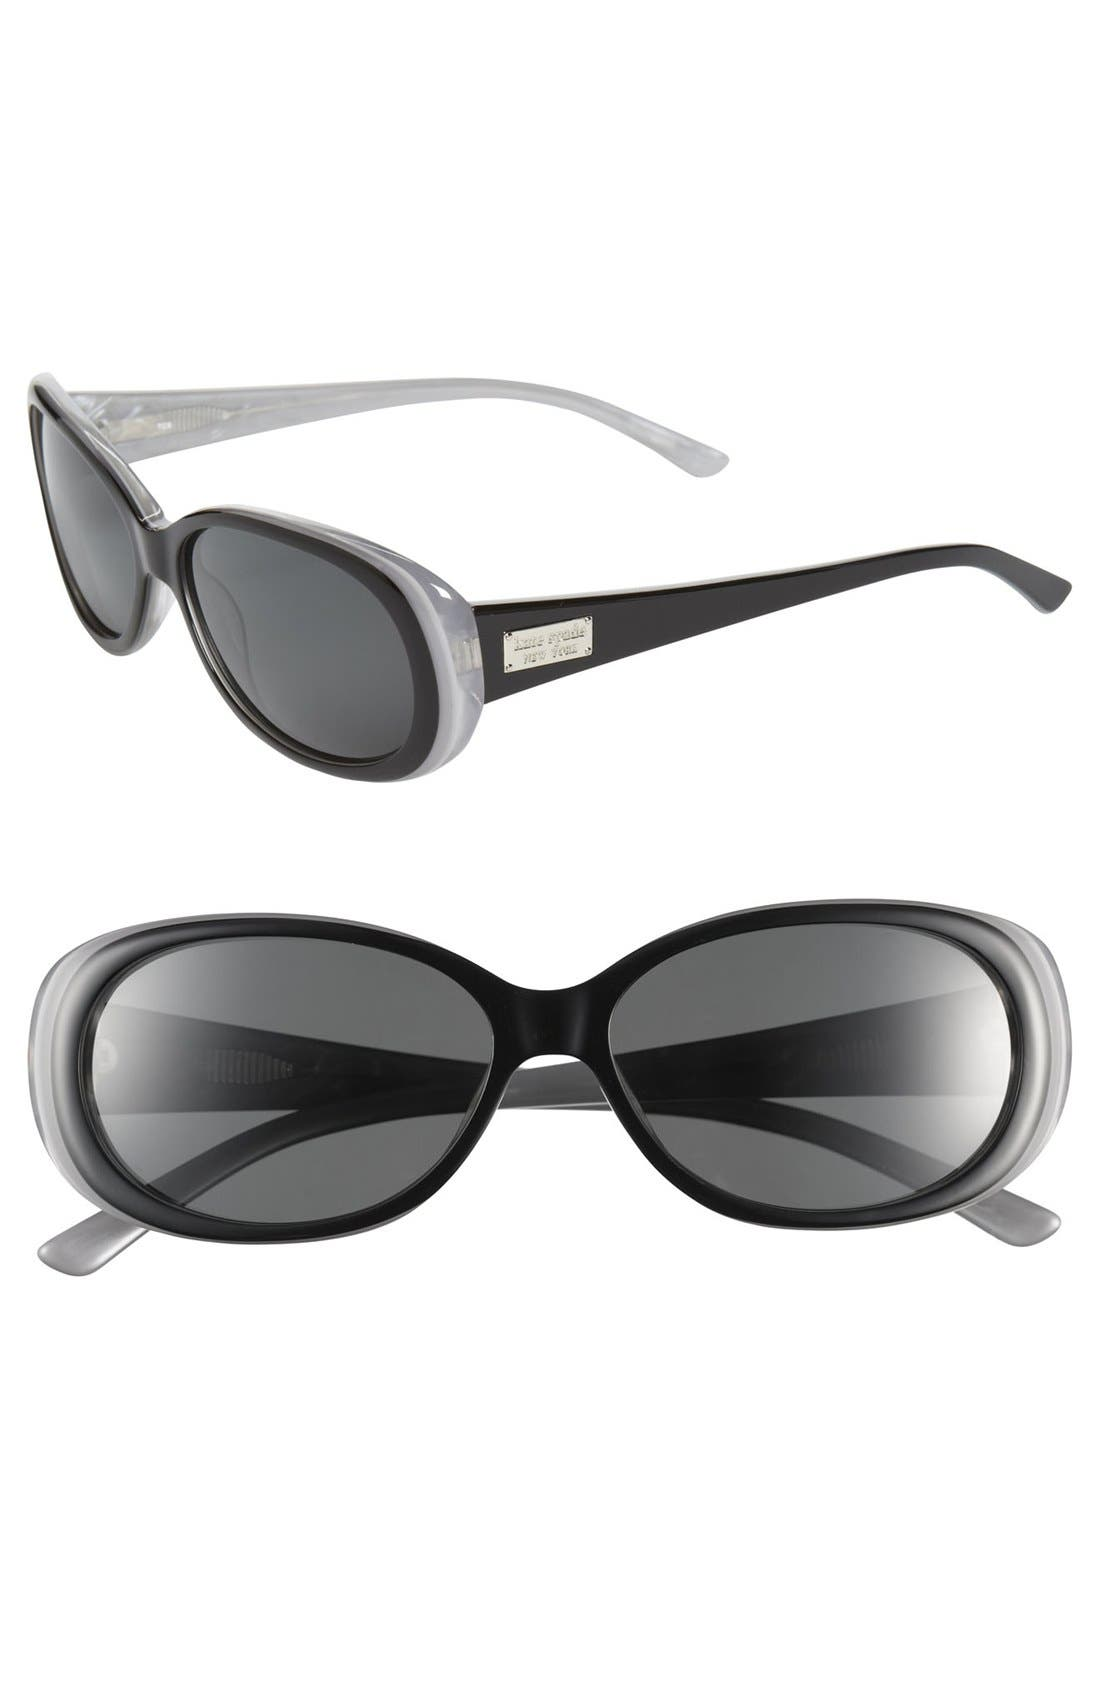 Main Image - kate spade new york 'sinclair' 55mm polarized sunglasses